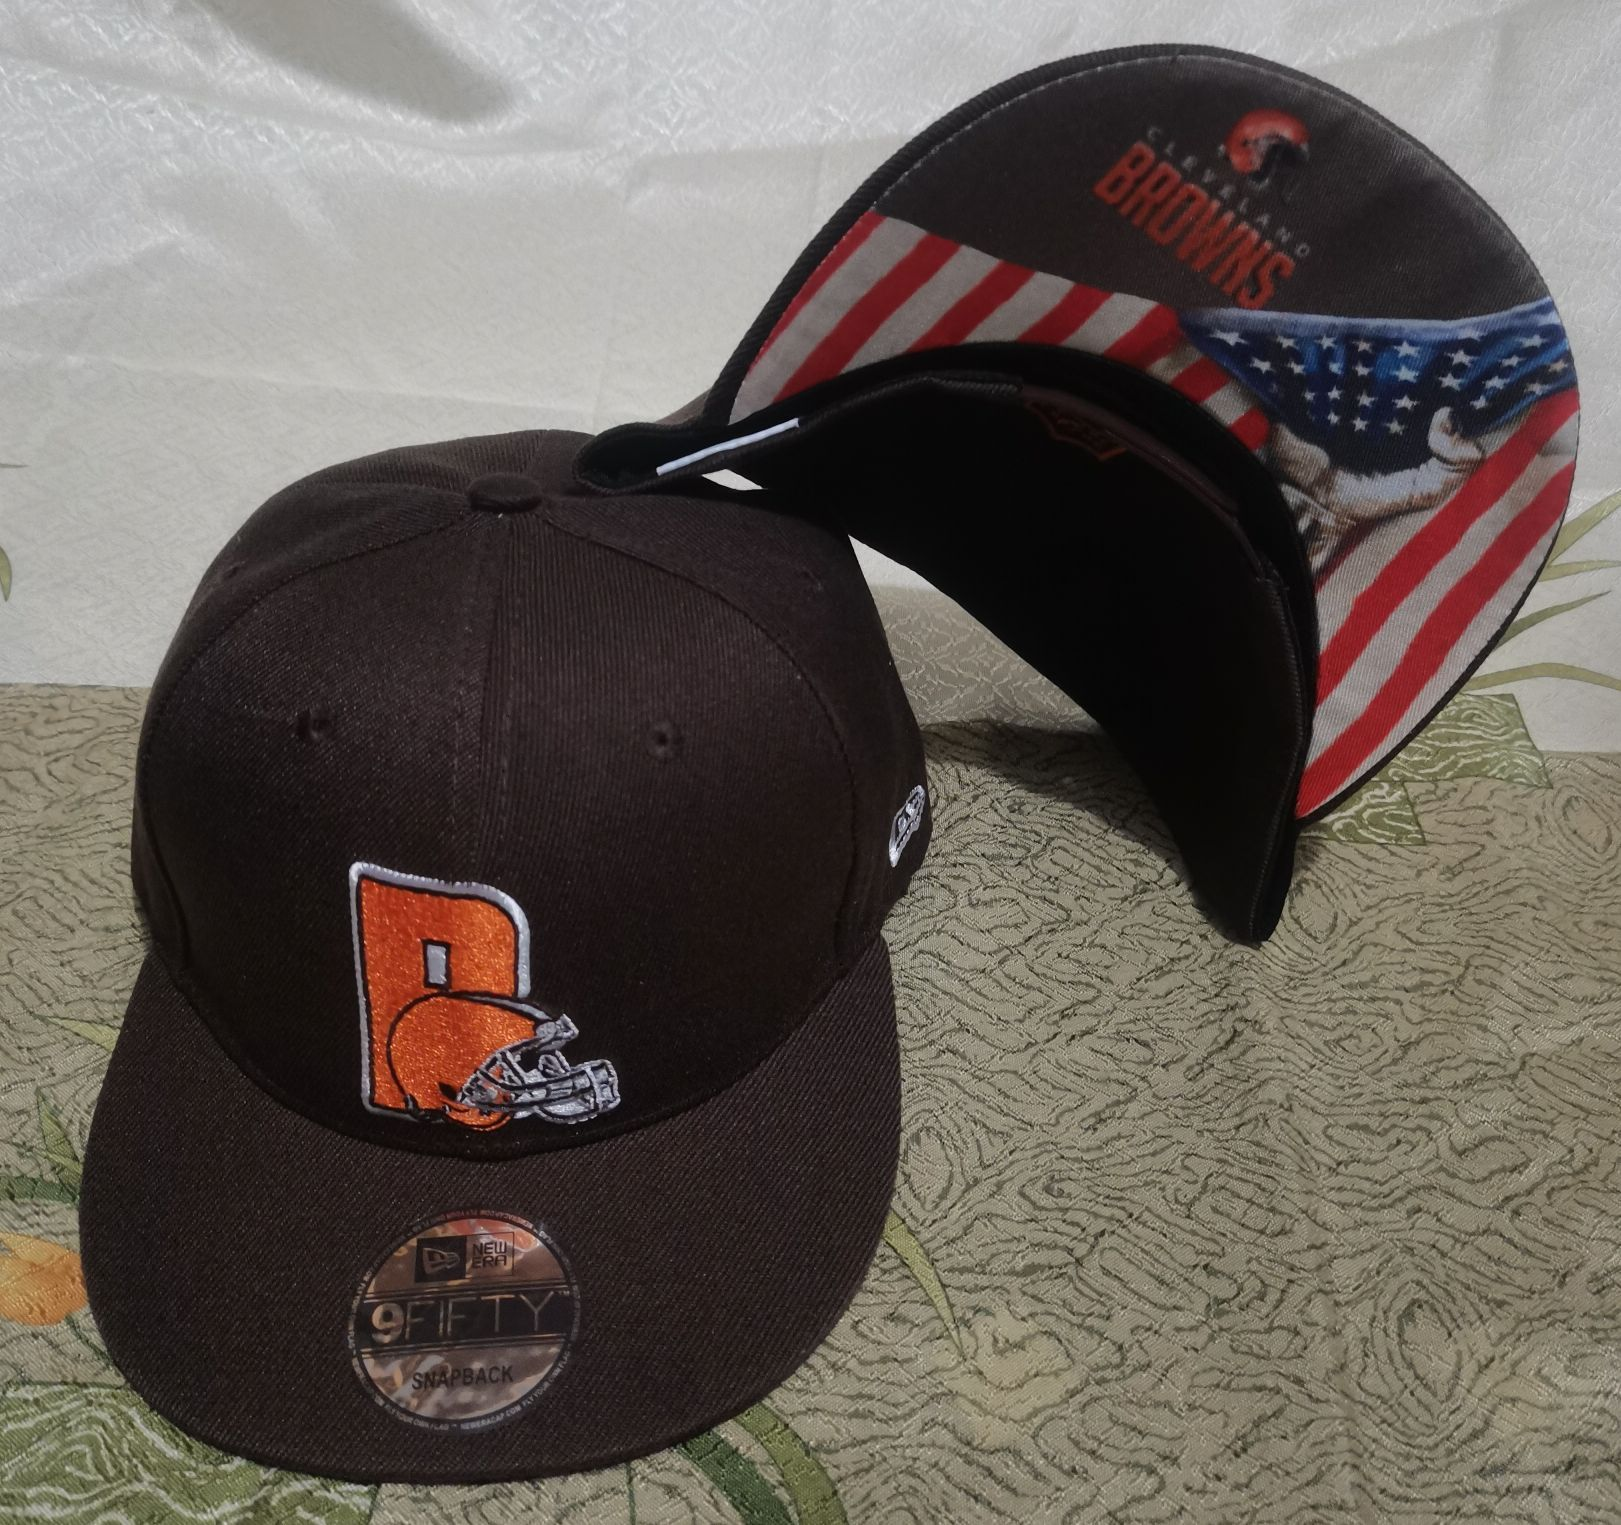 Cheap 2021 NFL Cleveland Browns 1 hat